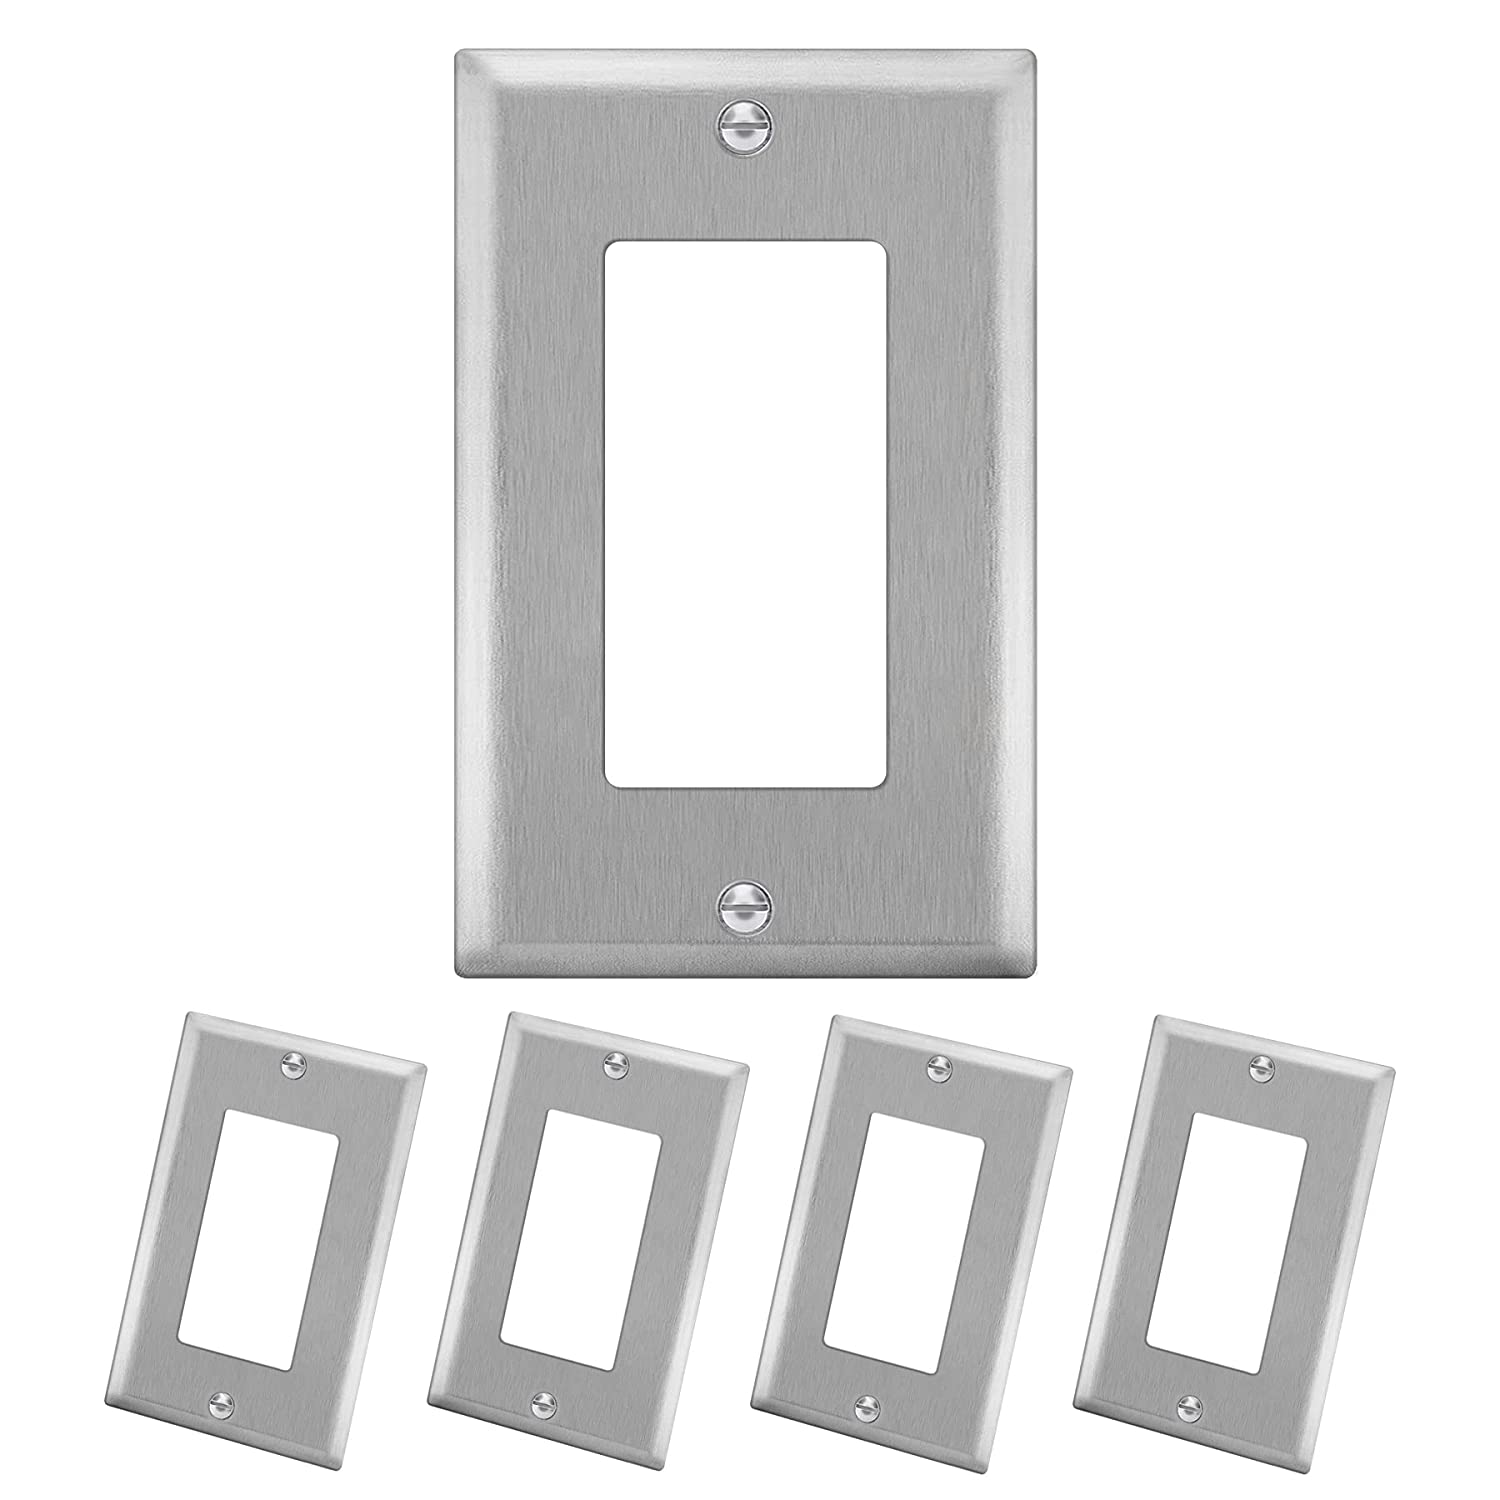 """5 Pack - ELECTECK 1-Gang Metal Decor Wall Plate, Non-corrosive Stainless Steel Light Switch Outlet Cover, Standard Size 4.52"""" x 2.77"""", Silver"""